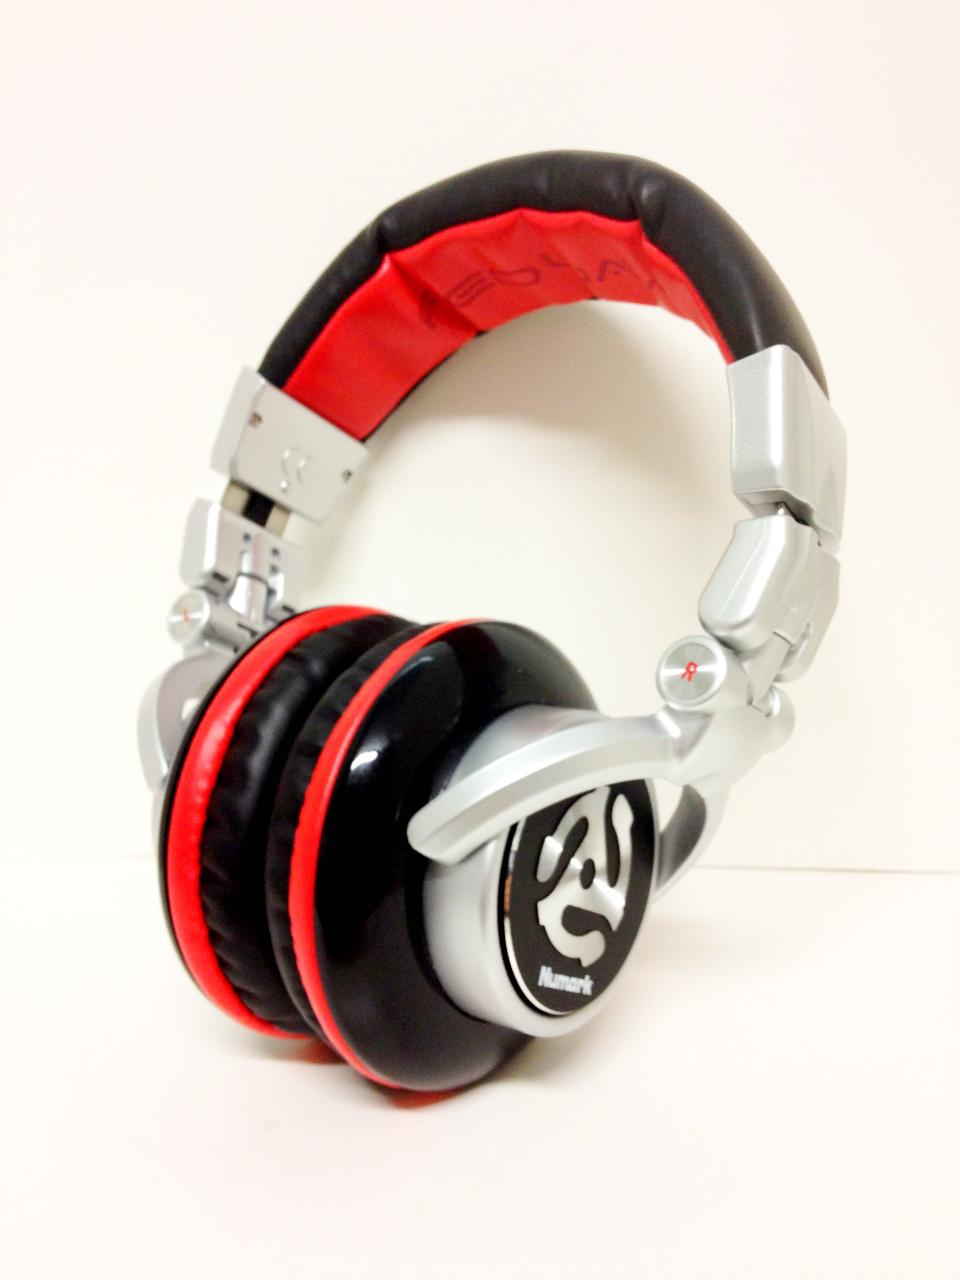 The Red Waves. Bass heavy. Good pair of DJ headphones.